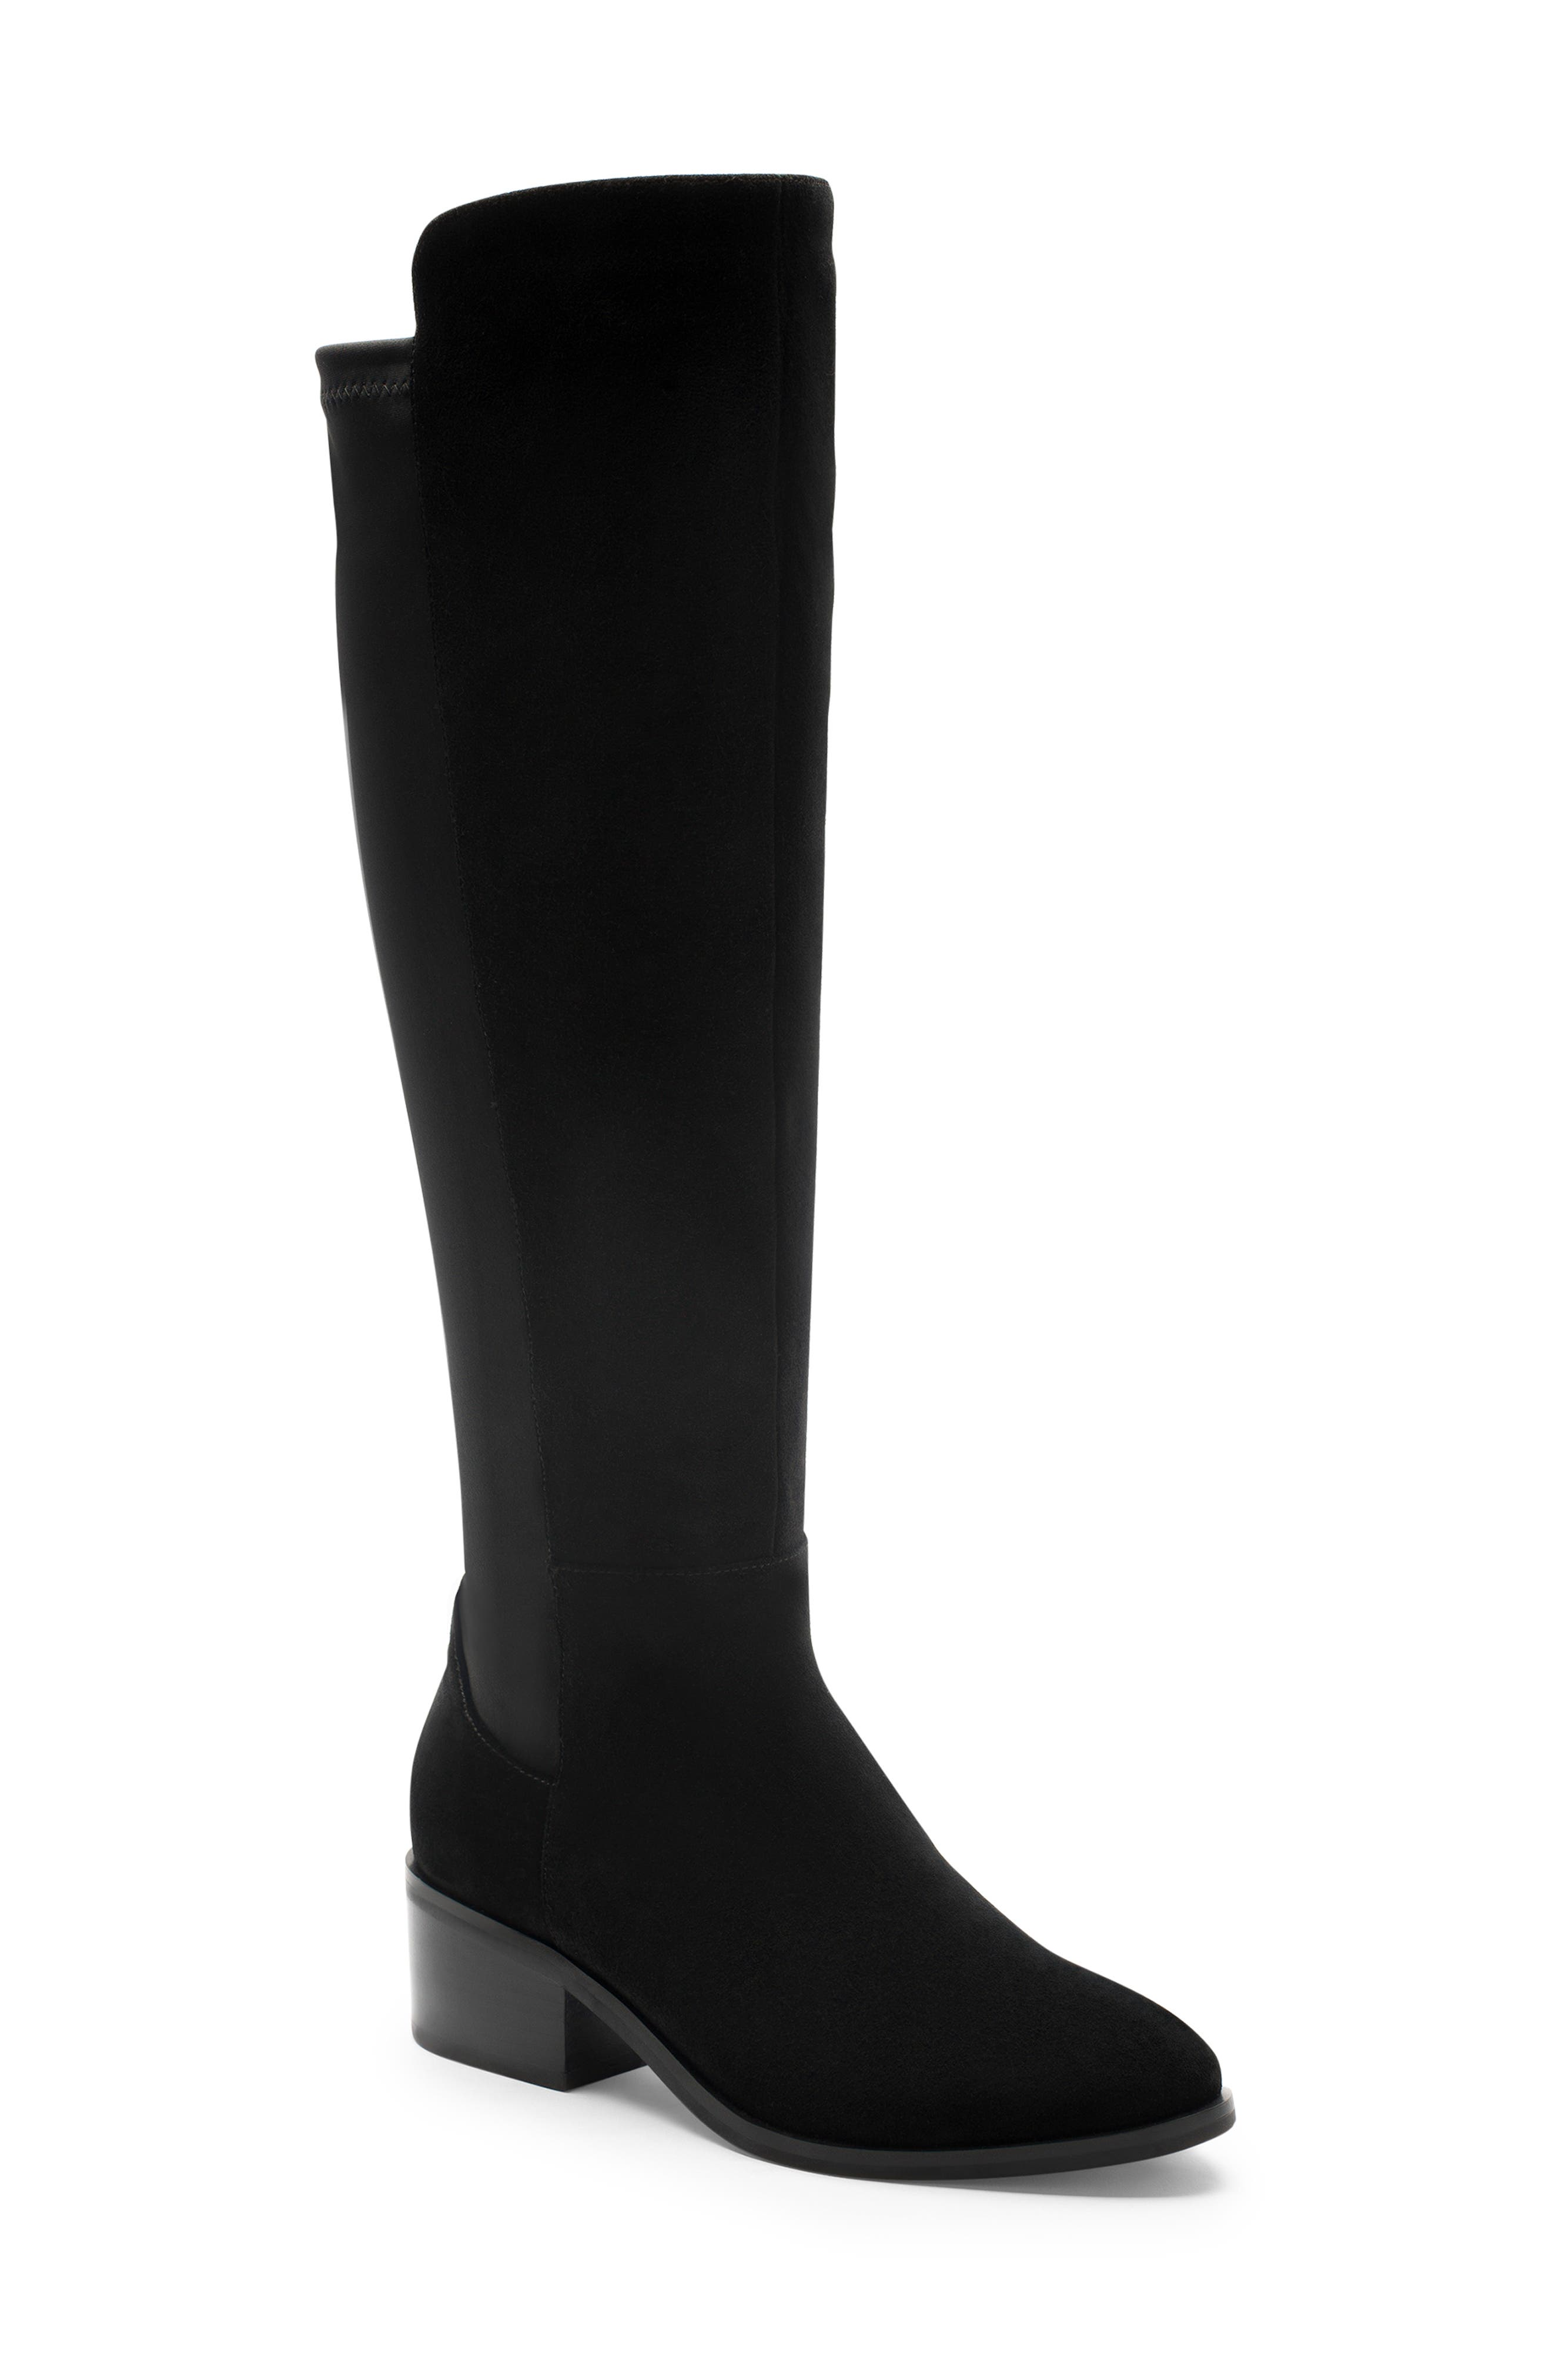 Gallo Knee-High Waterproof Boot,                             Main thumbnail 1, color,                             BLACK SUEDE